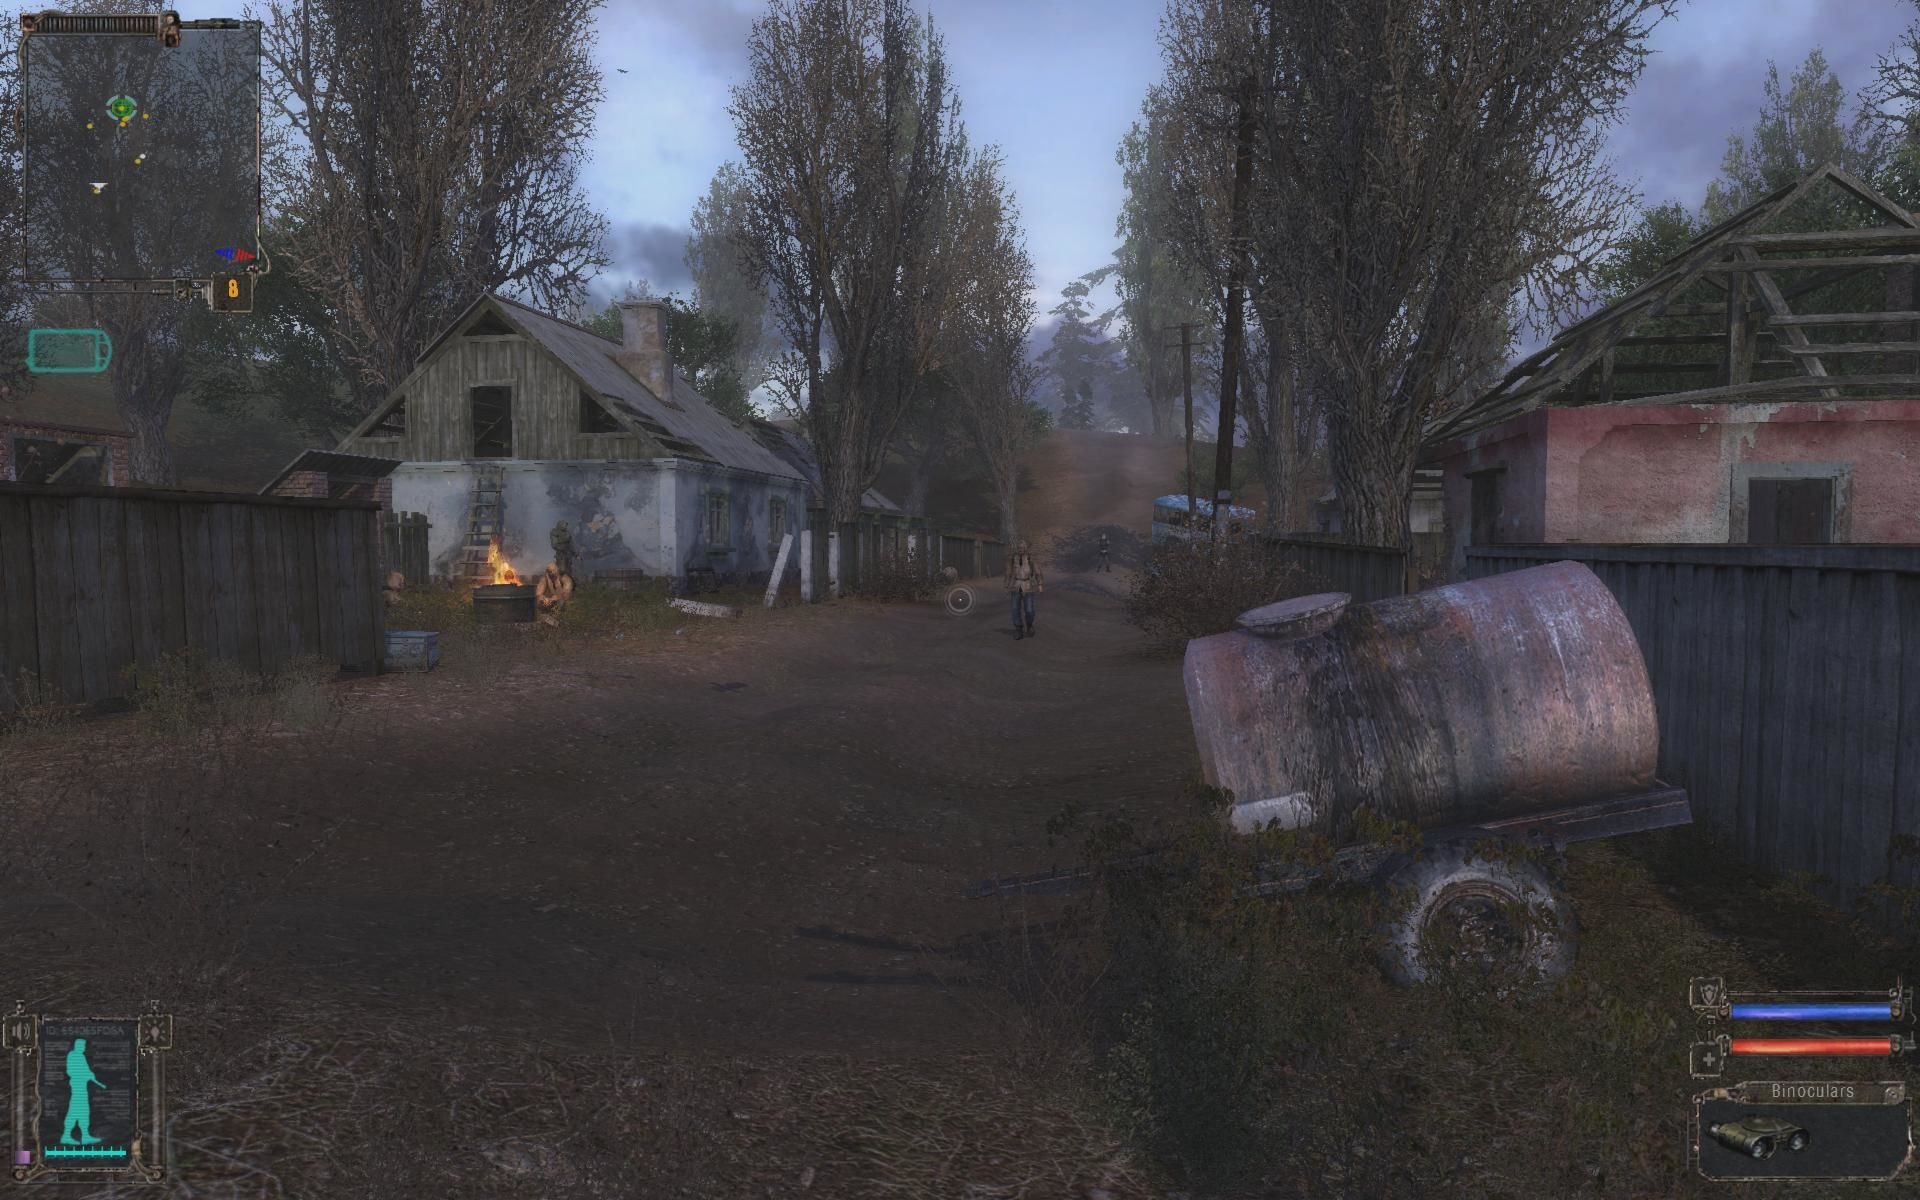 S.T.A.L.K.E.R.: Shadow of Chernobyl Windows This is the small village where you start off the game.